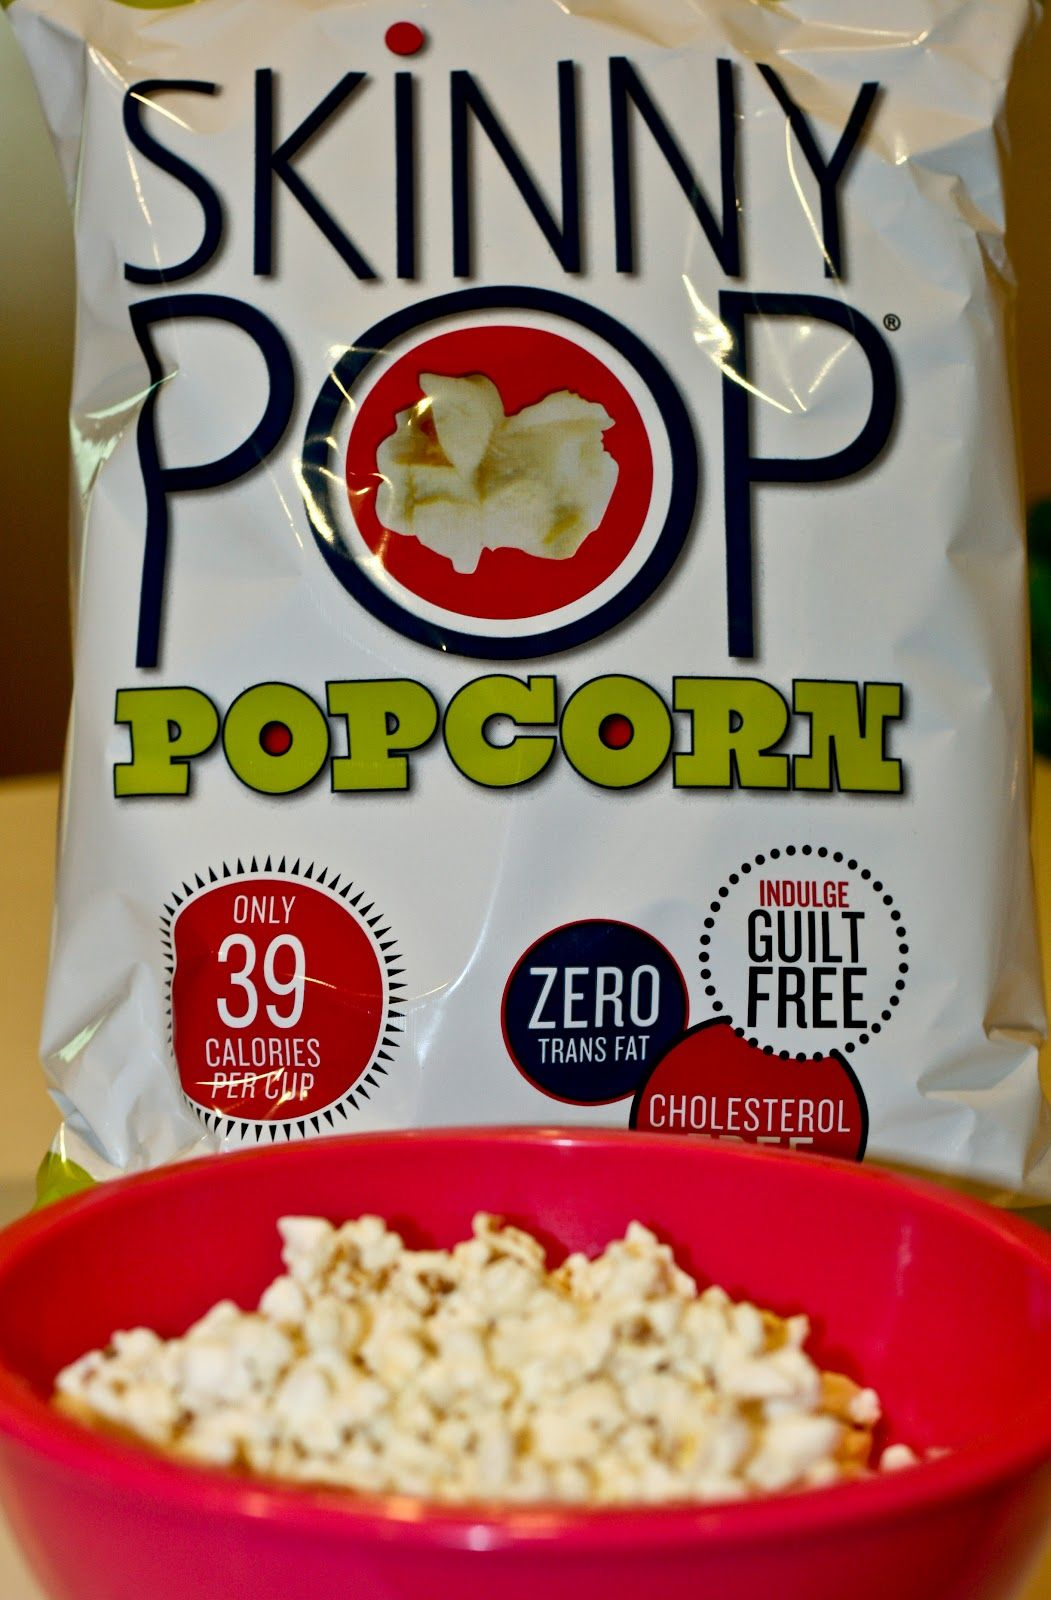 Ok we just found this great skinny pop popcorn at Costco